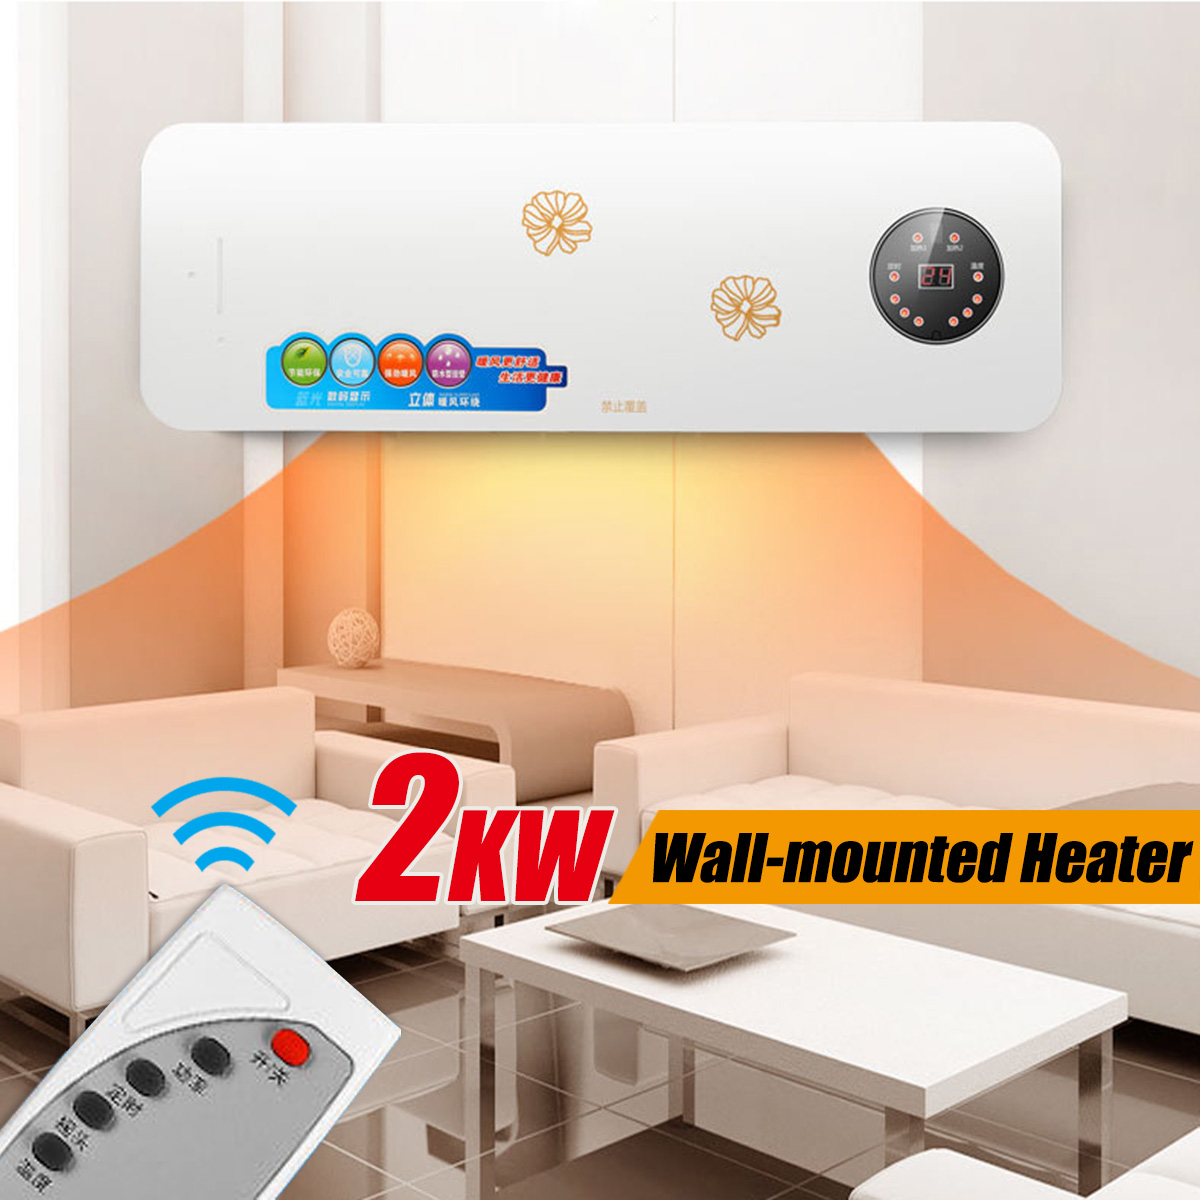 220V 2000W Heater Home Heater Waterproof Bathroom Electric Indoor Wall-mounted Heaters Electrical With Remote Control цены